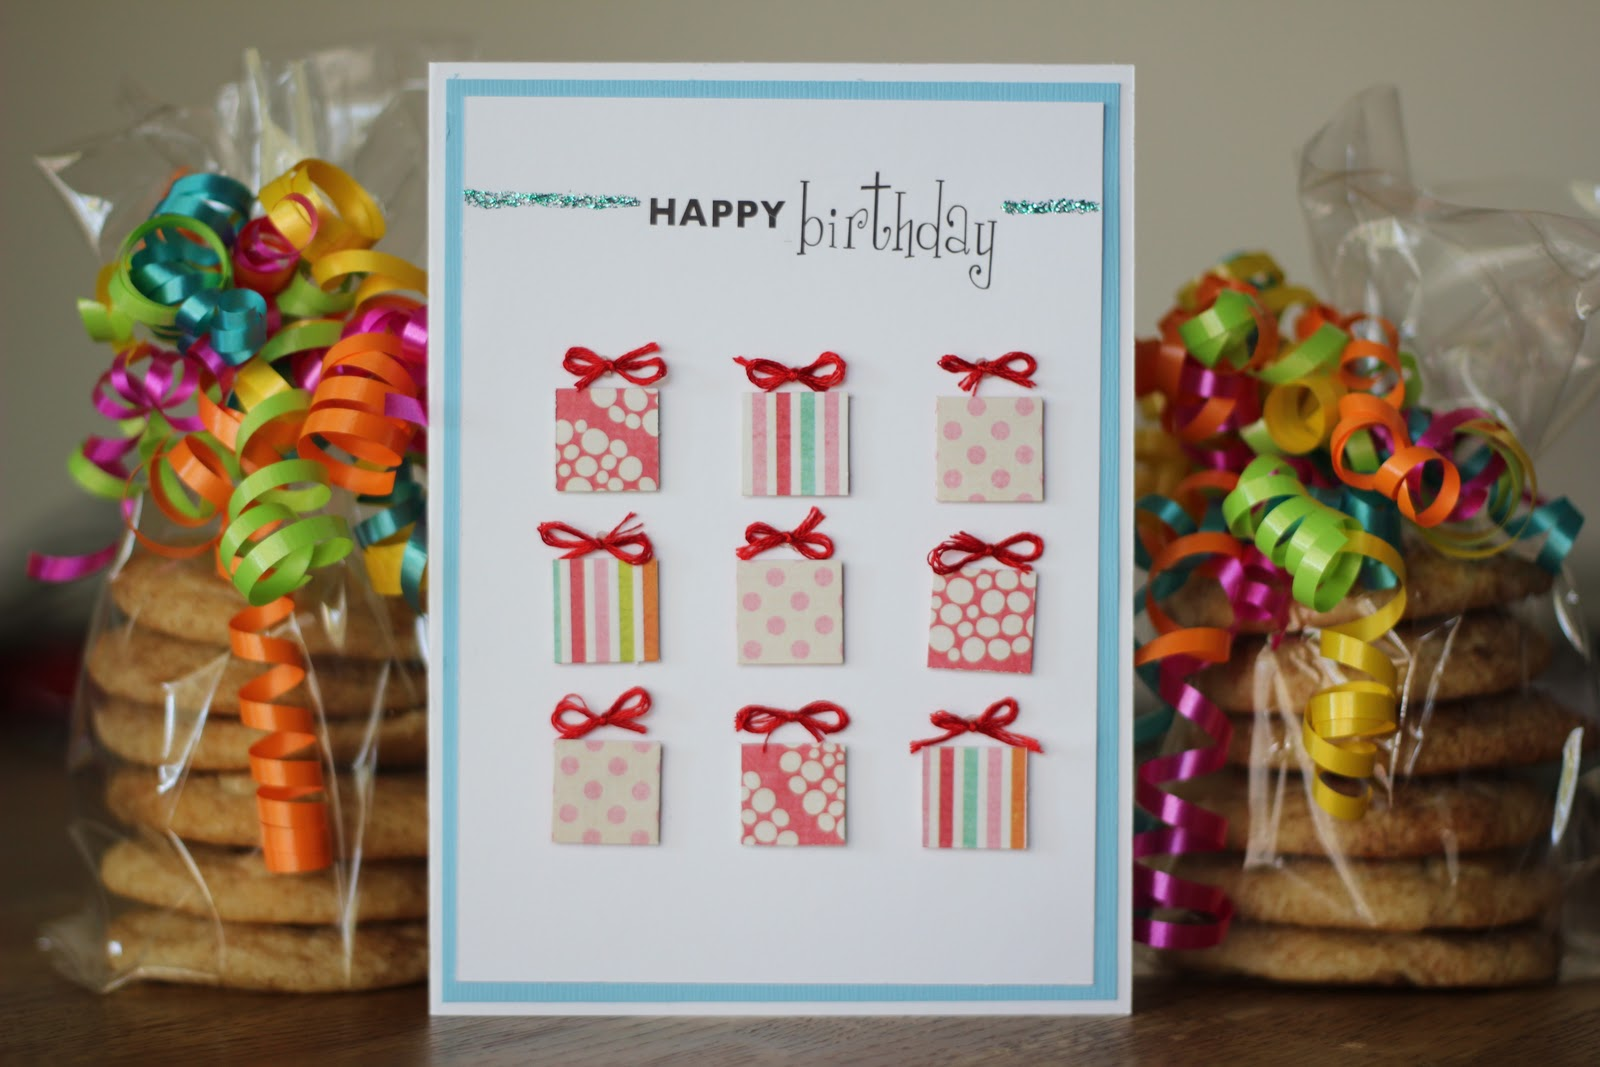 Three yellow lemons lots of presents birthday card lots of presents birthday card m4hsunfo